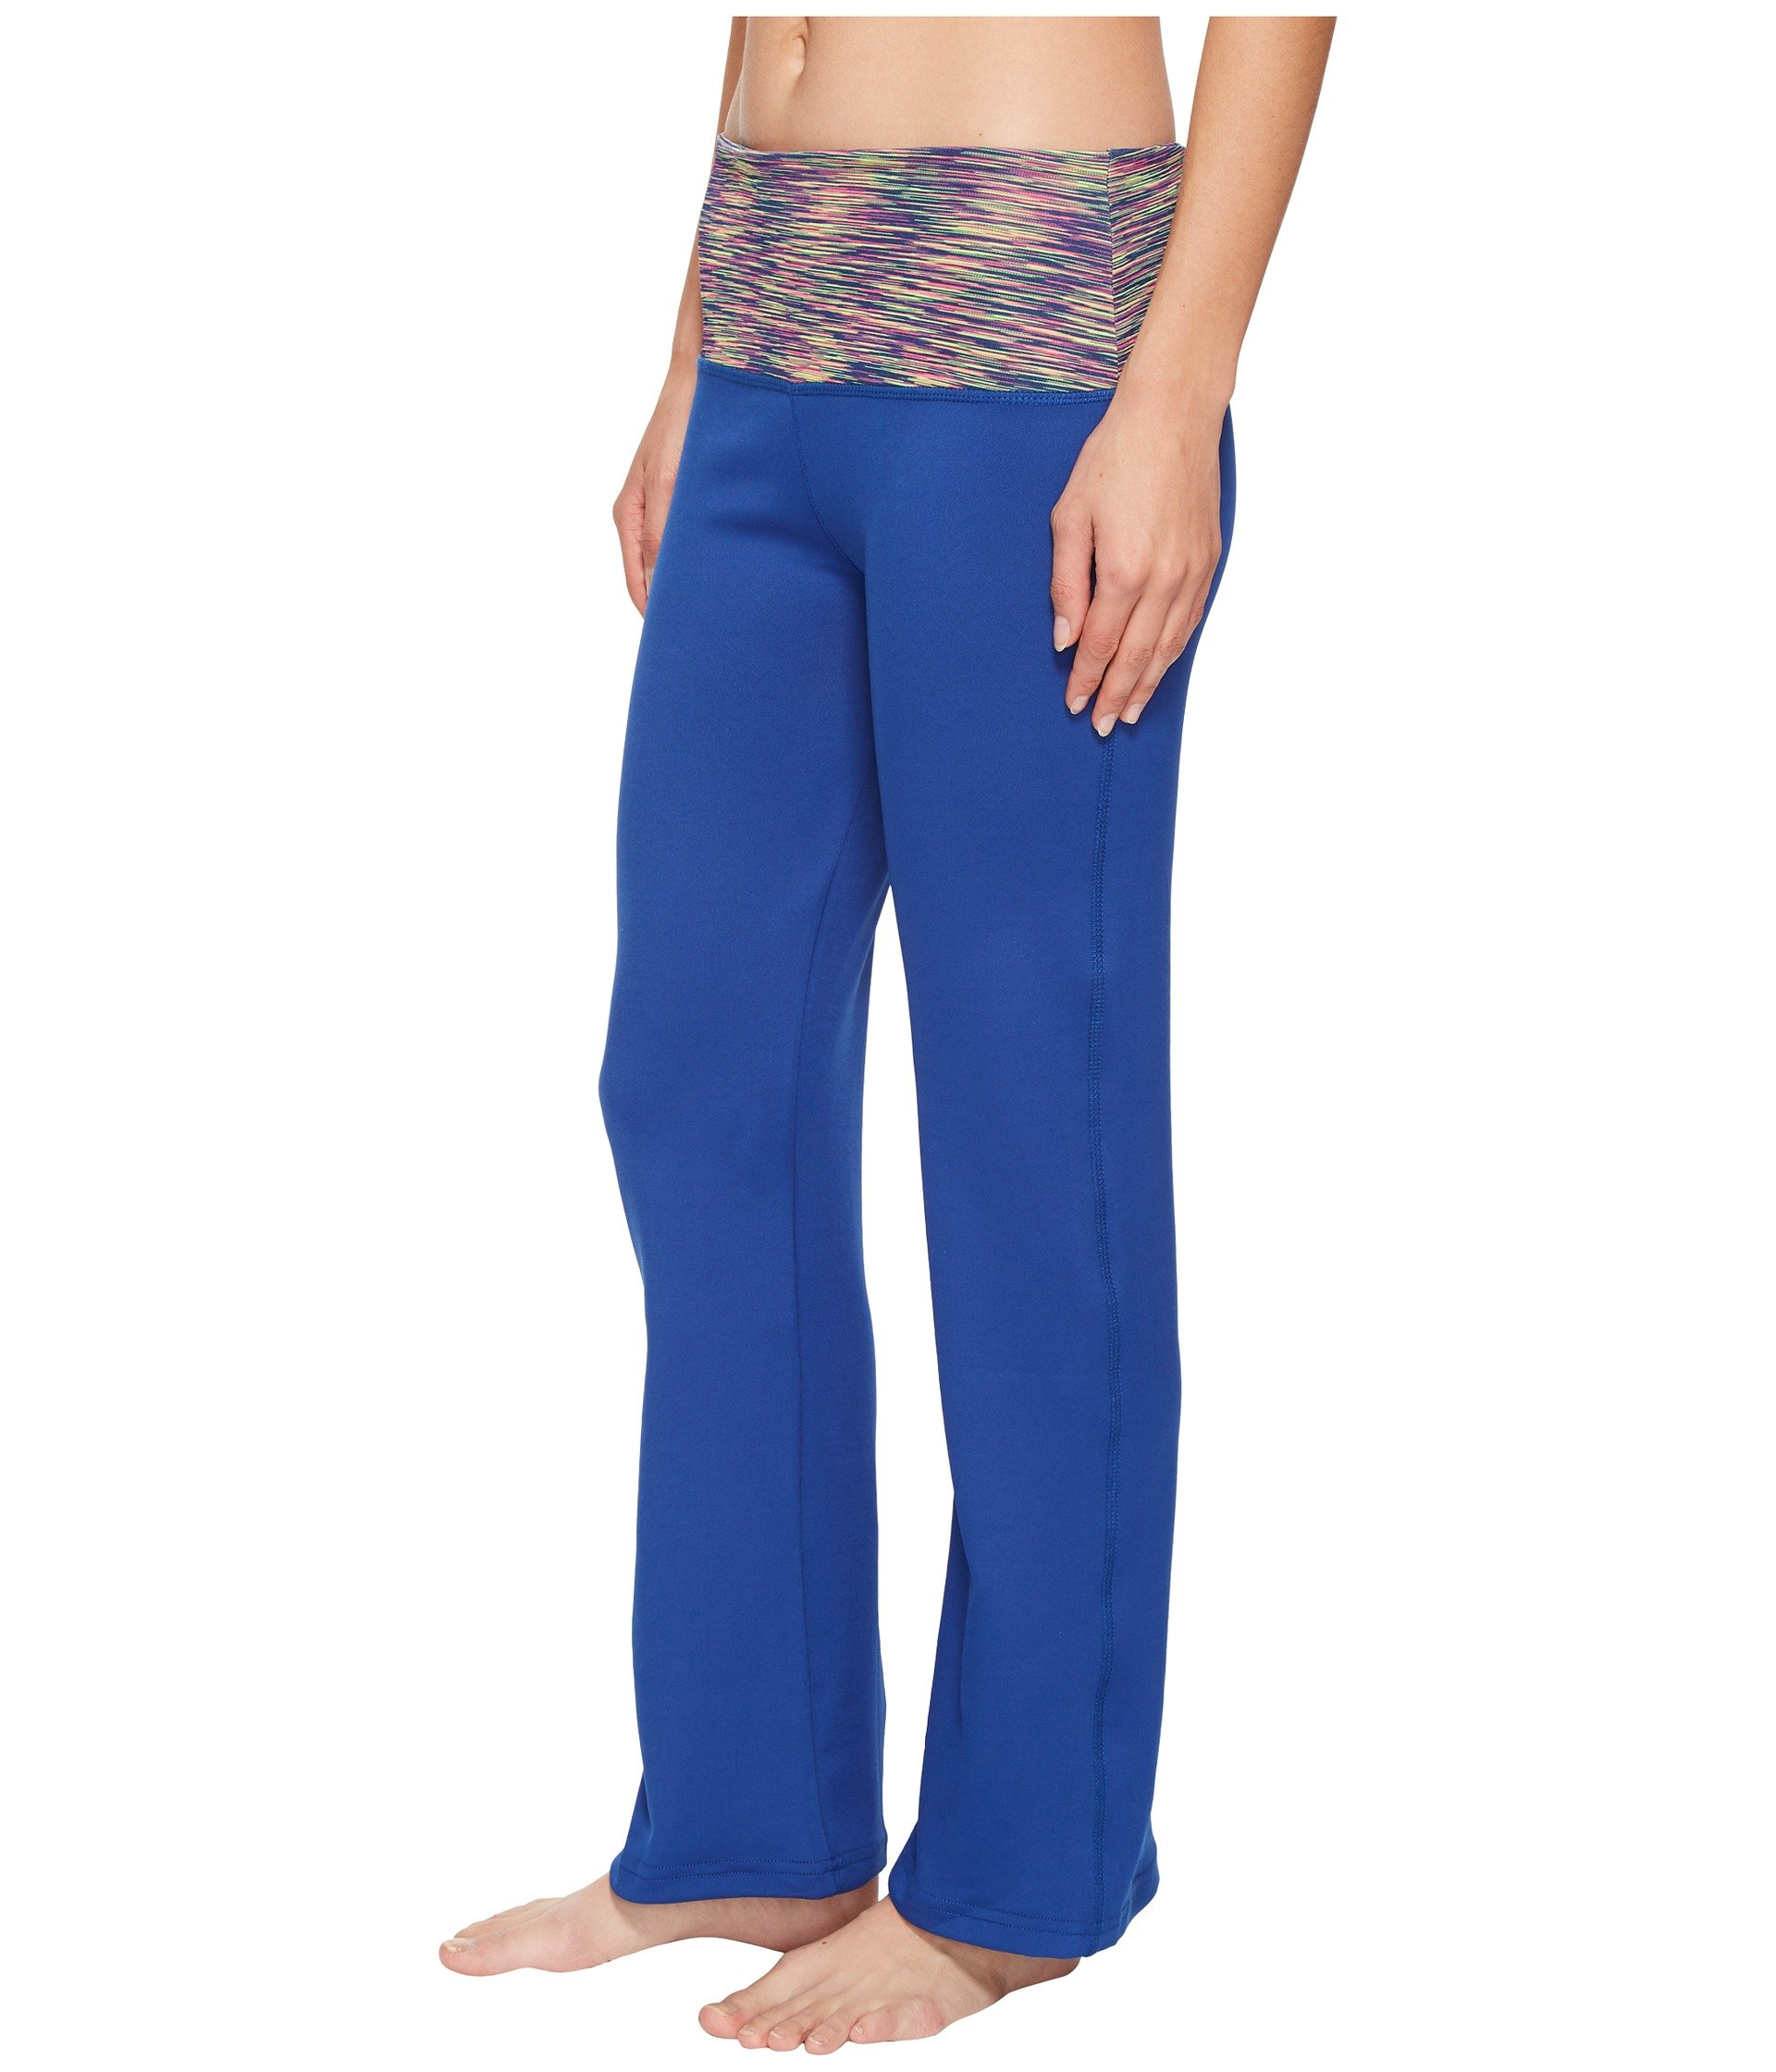 Co Clothing Bottom Pants Yoga Independence Navy Flare Way Day Two AUOxBqBwE